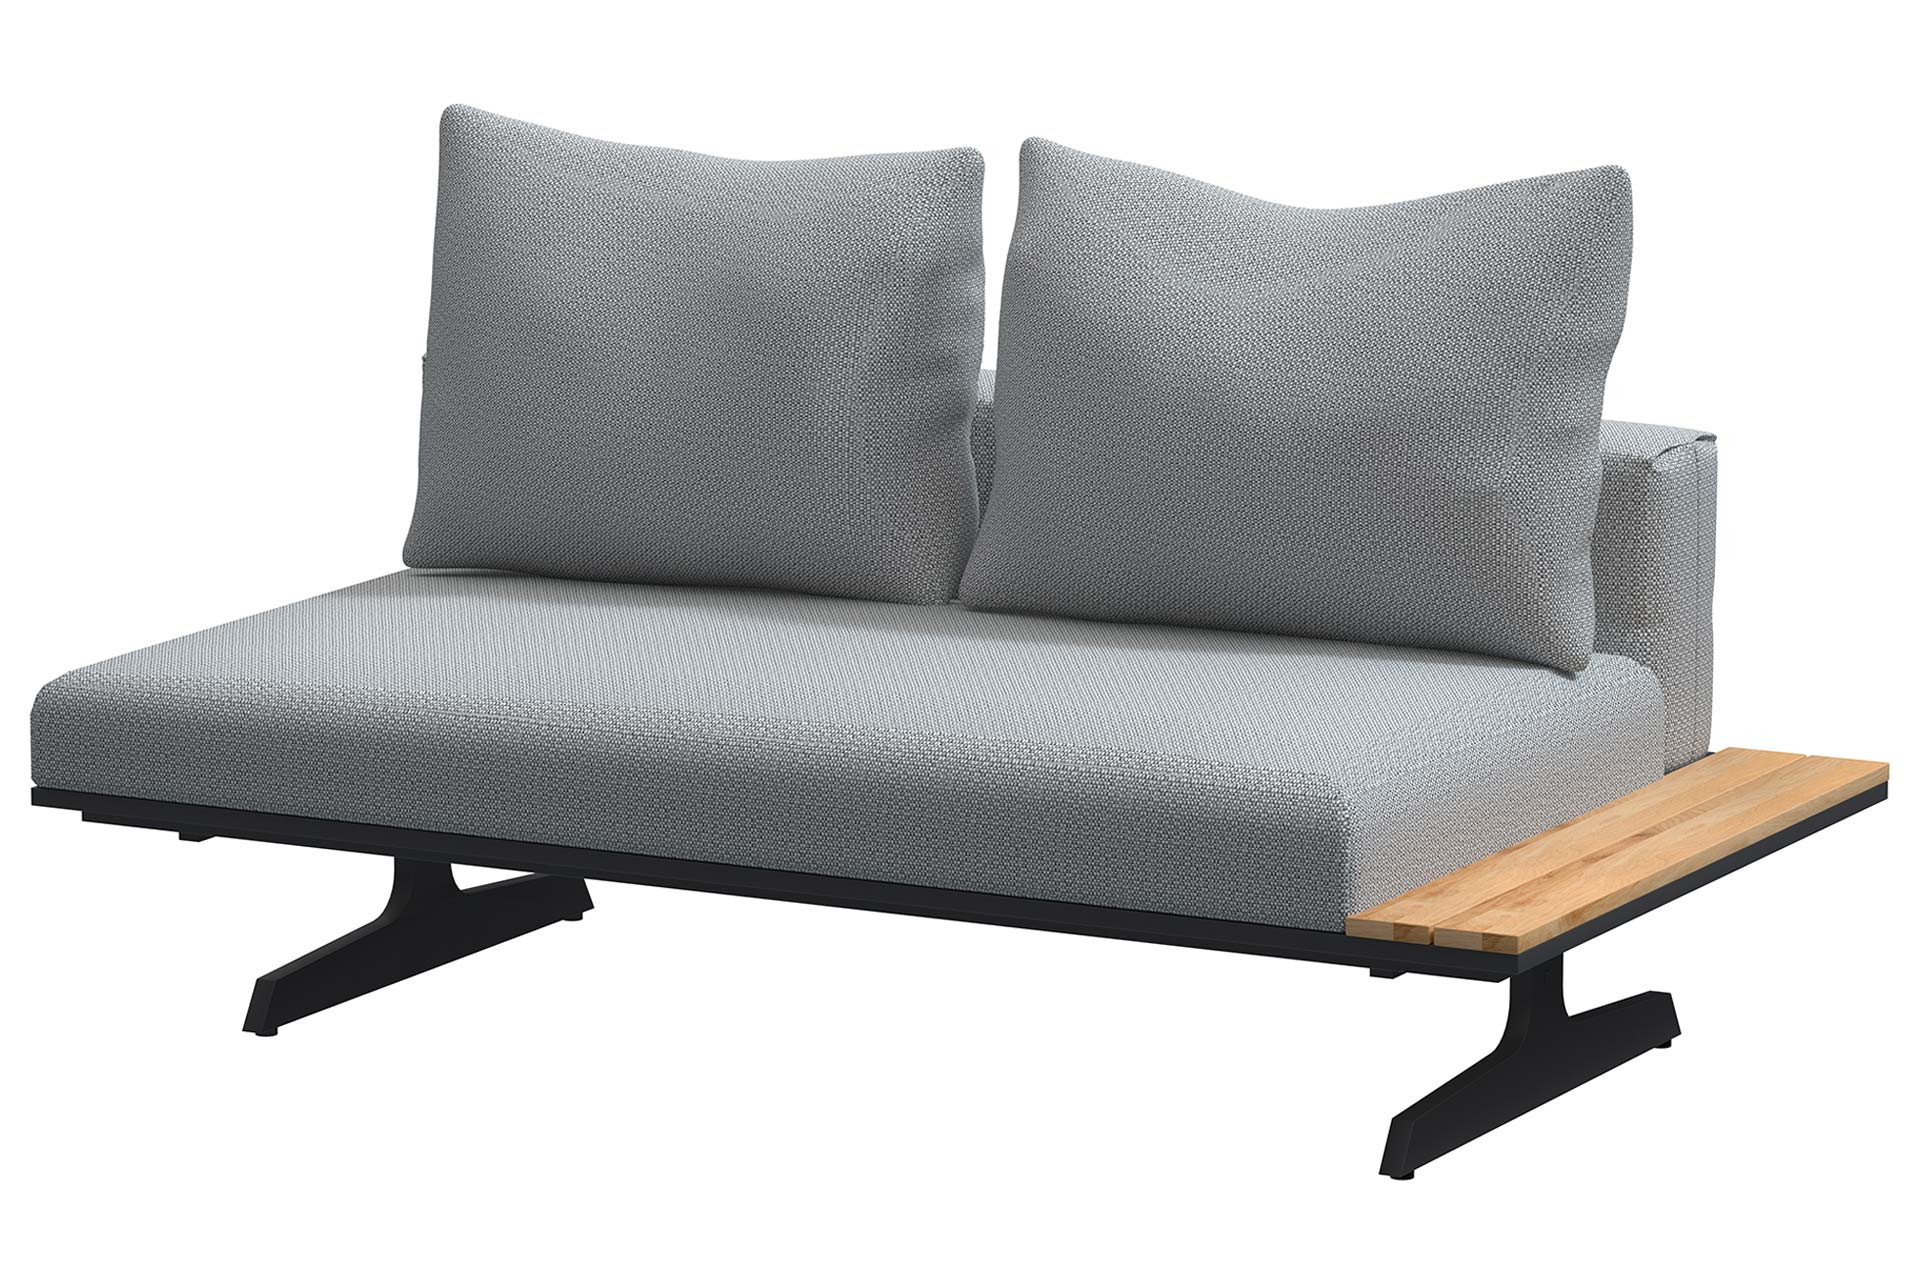 Endless multi concept Anthracite bench and chaise lounge 172 x 95 cm